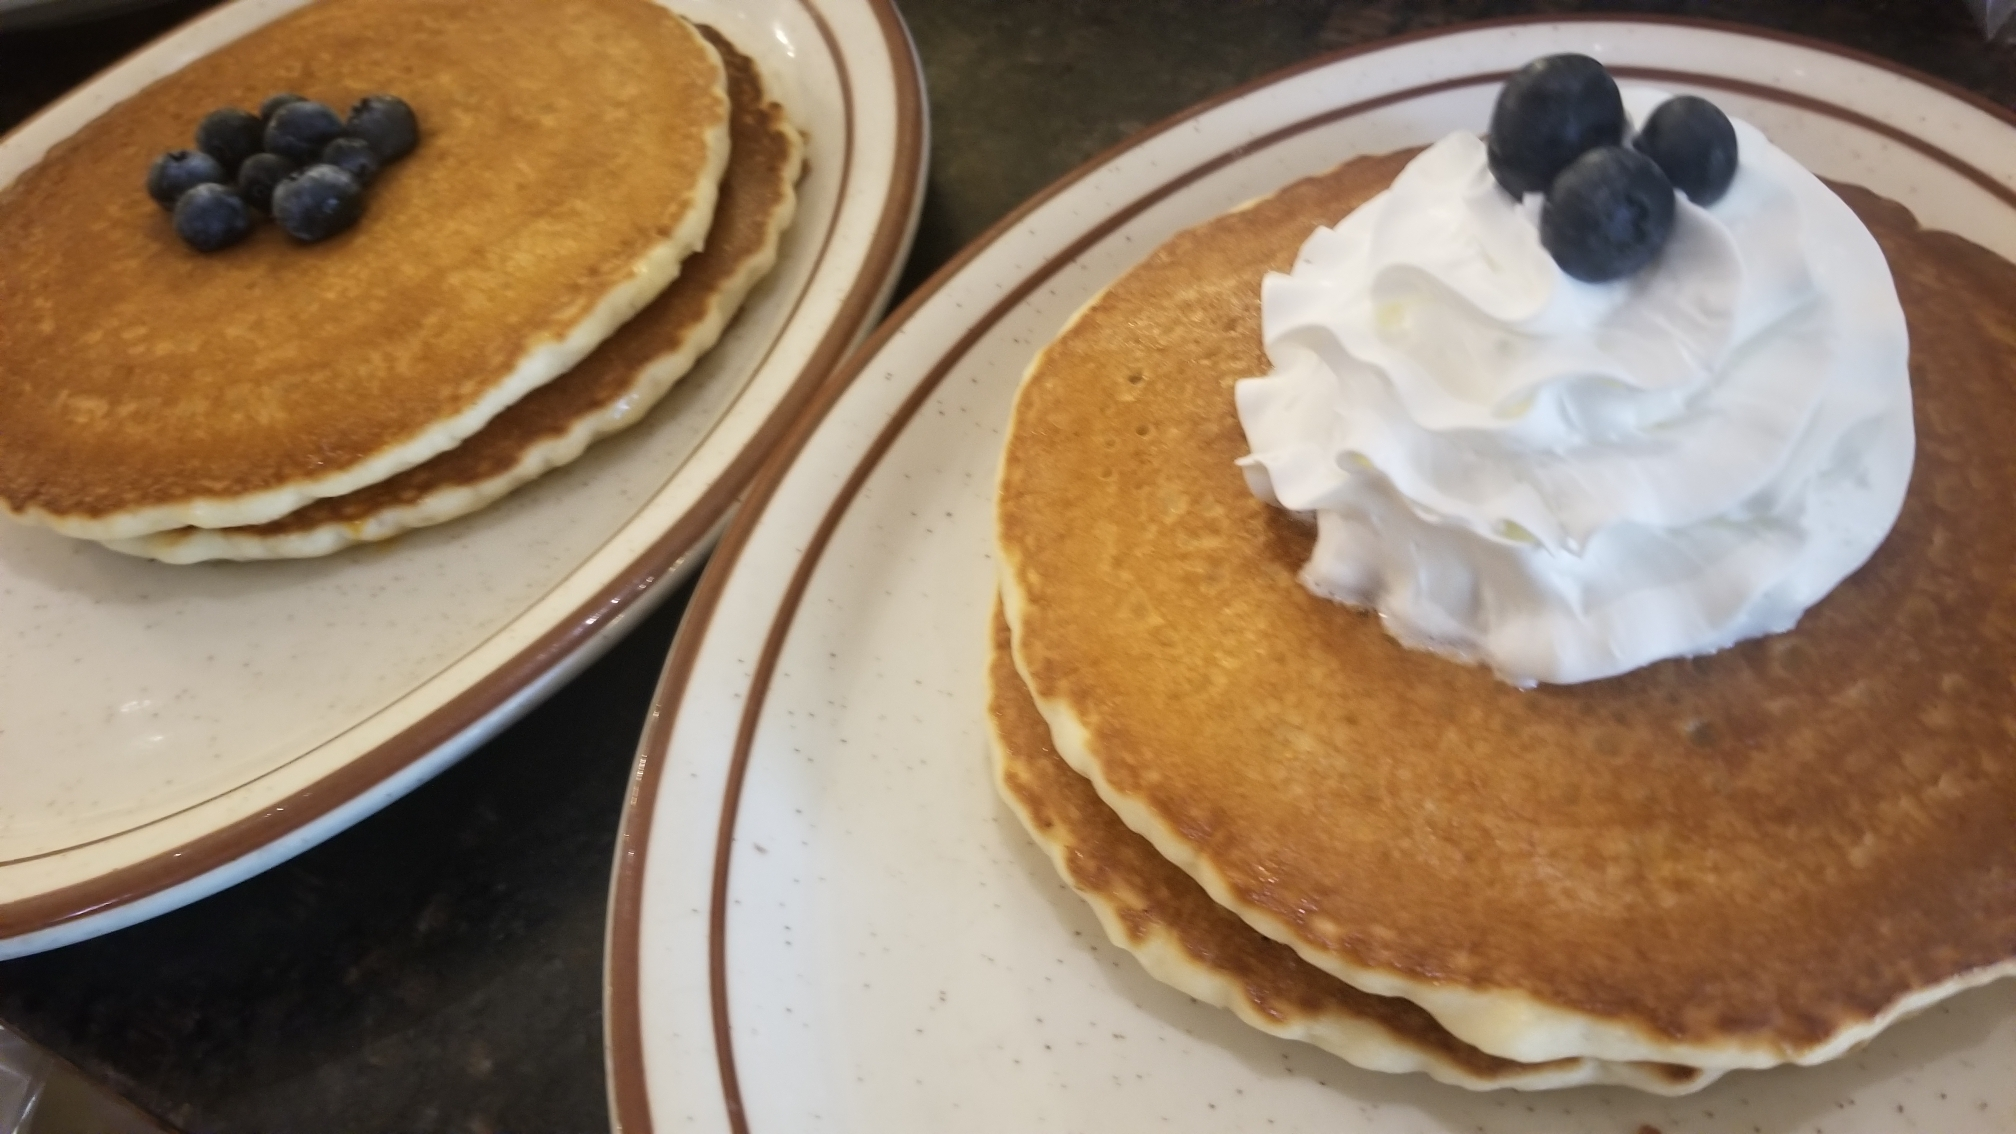 Fluffy pancakes on white plate topped with whipped cream and blueberries